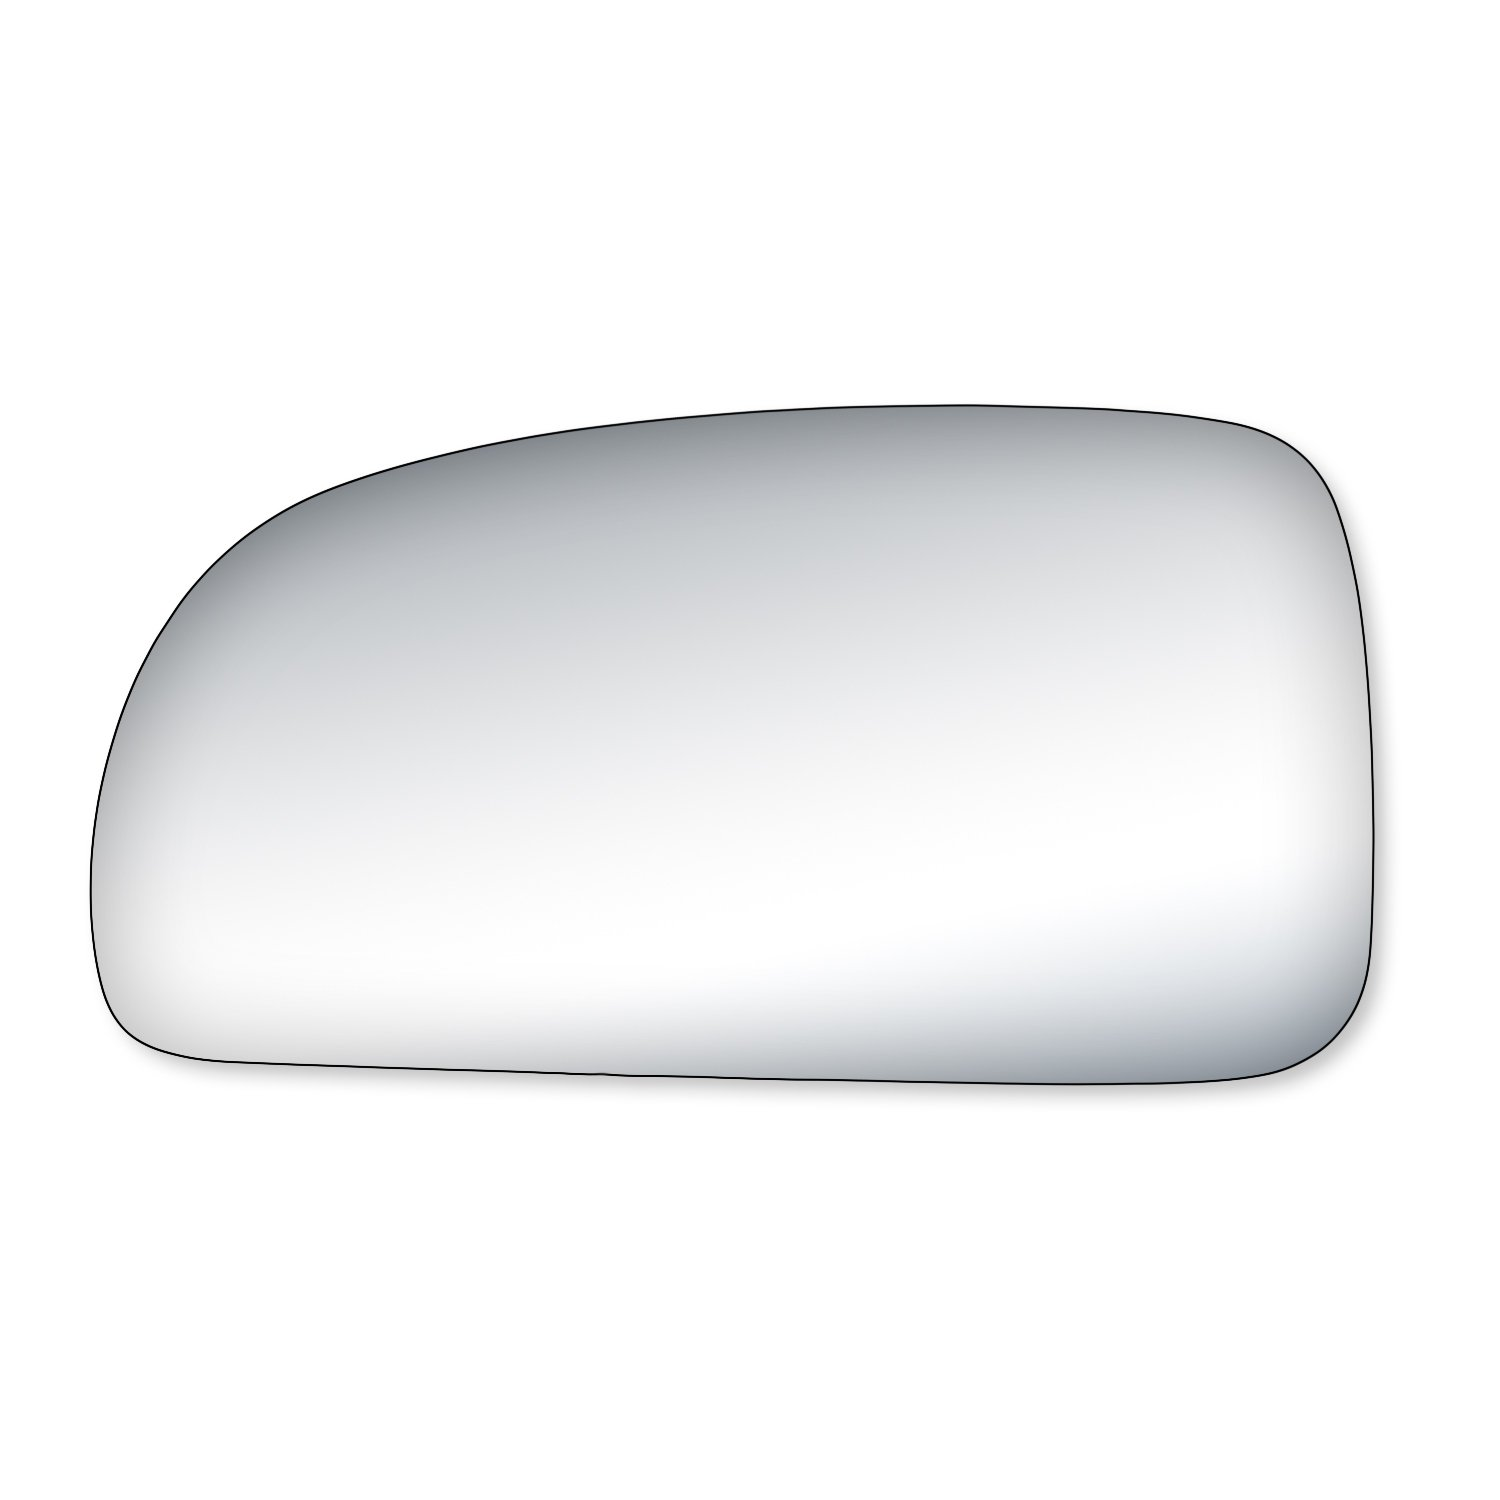 Fit System 99188 Chevrolet Trailblazer Driver Passenger Side Show Details For Dorman 923009 Tail Lamp Circuit Board Replacement Mirror Glass Exterior Amazon Canada